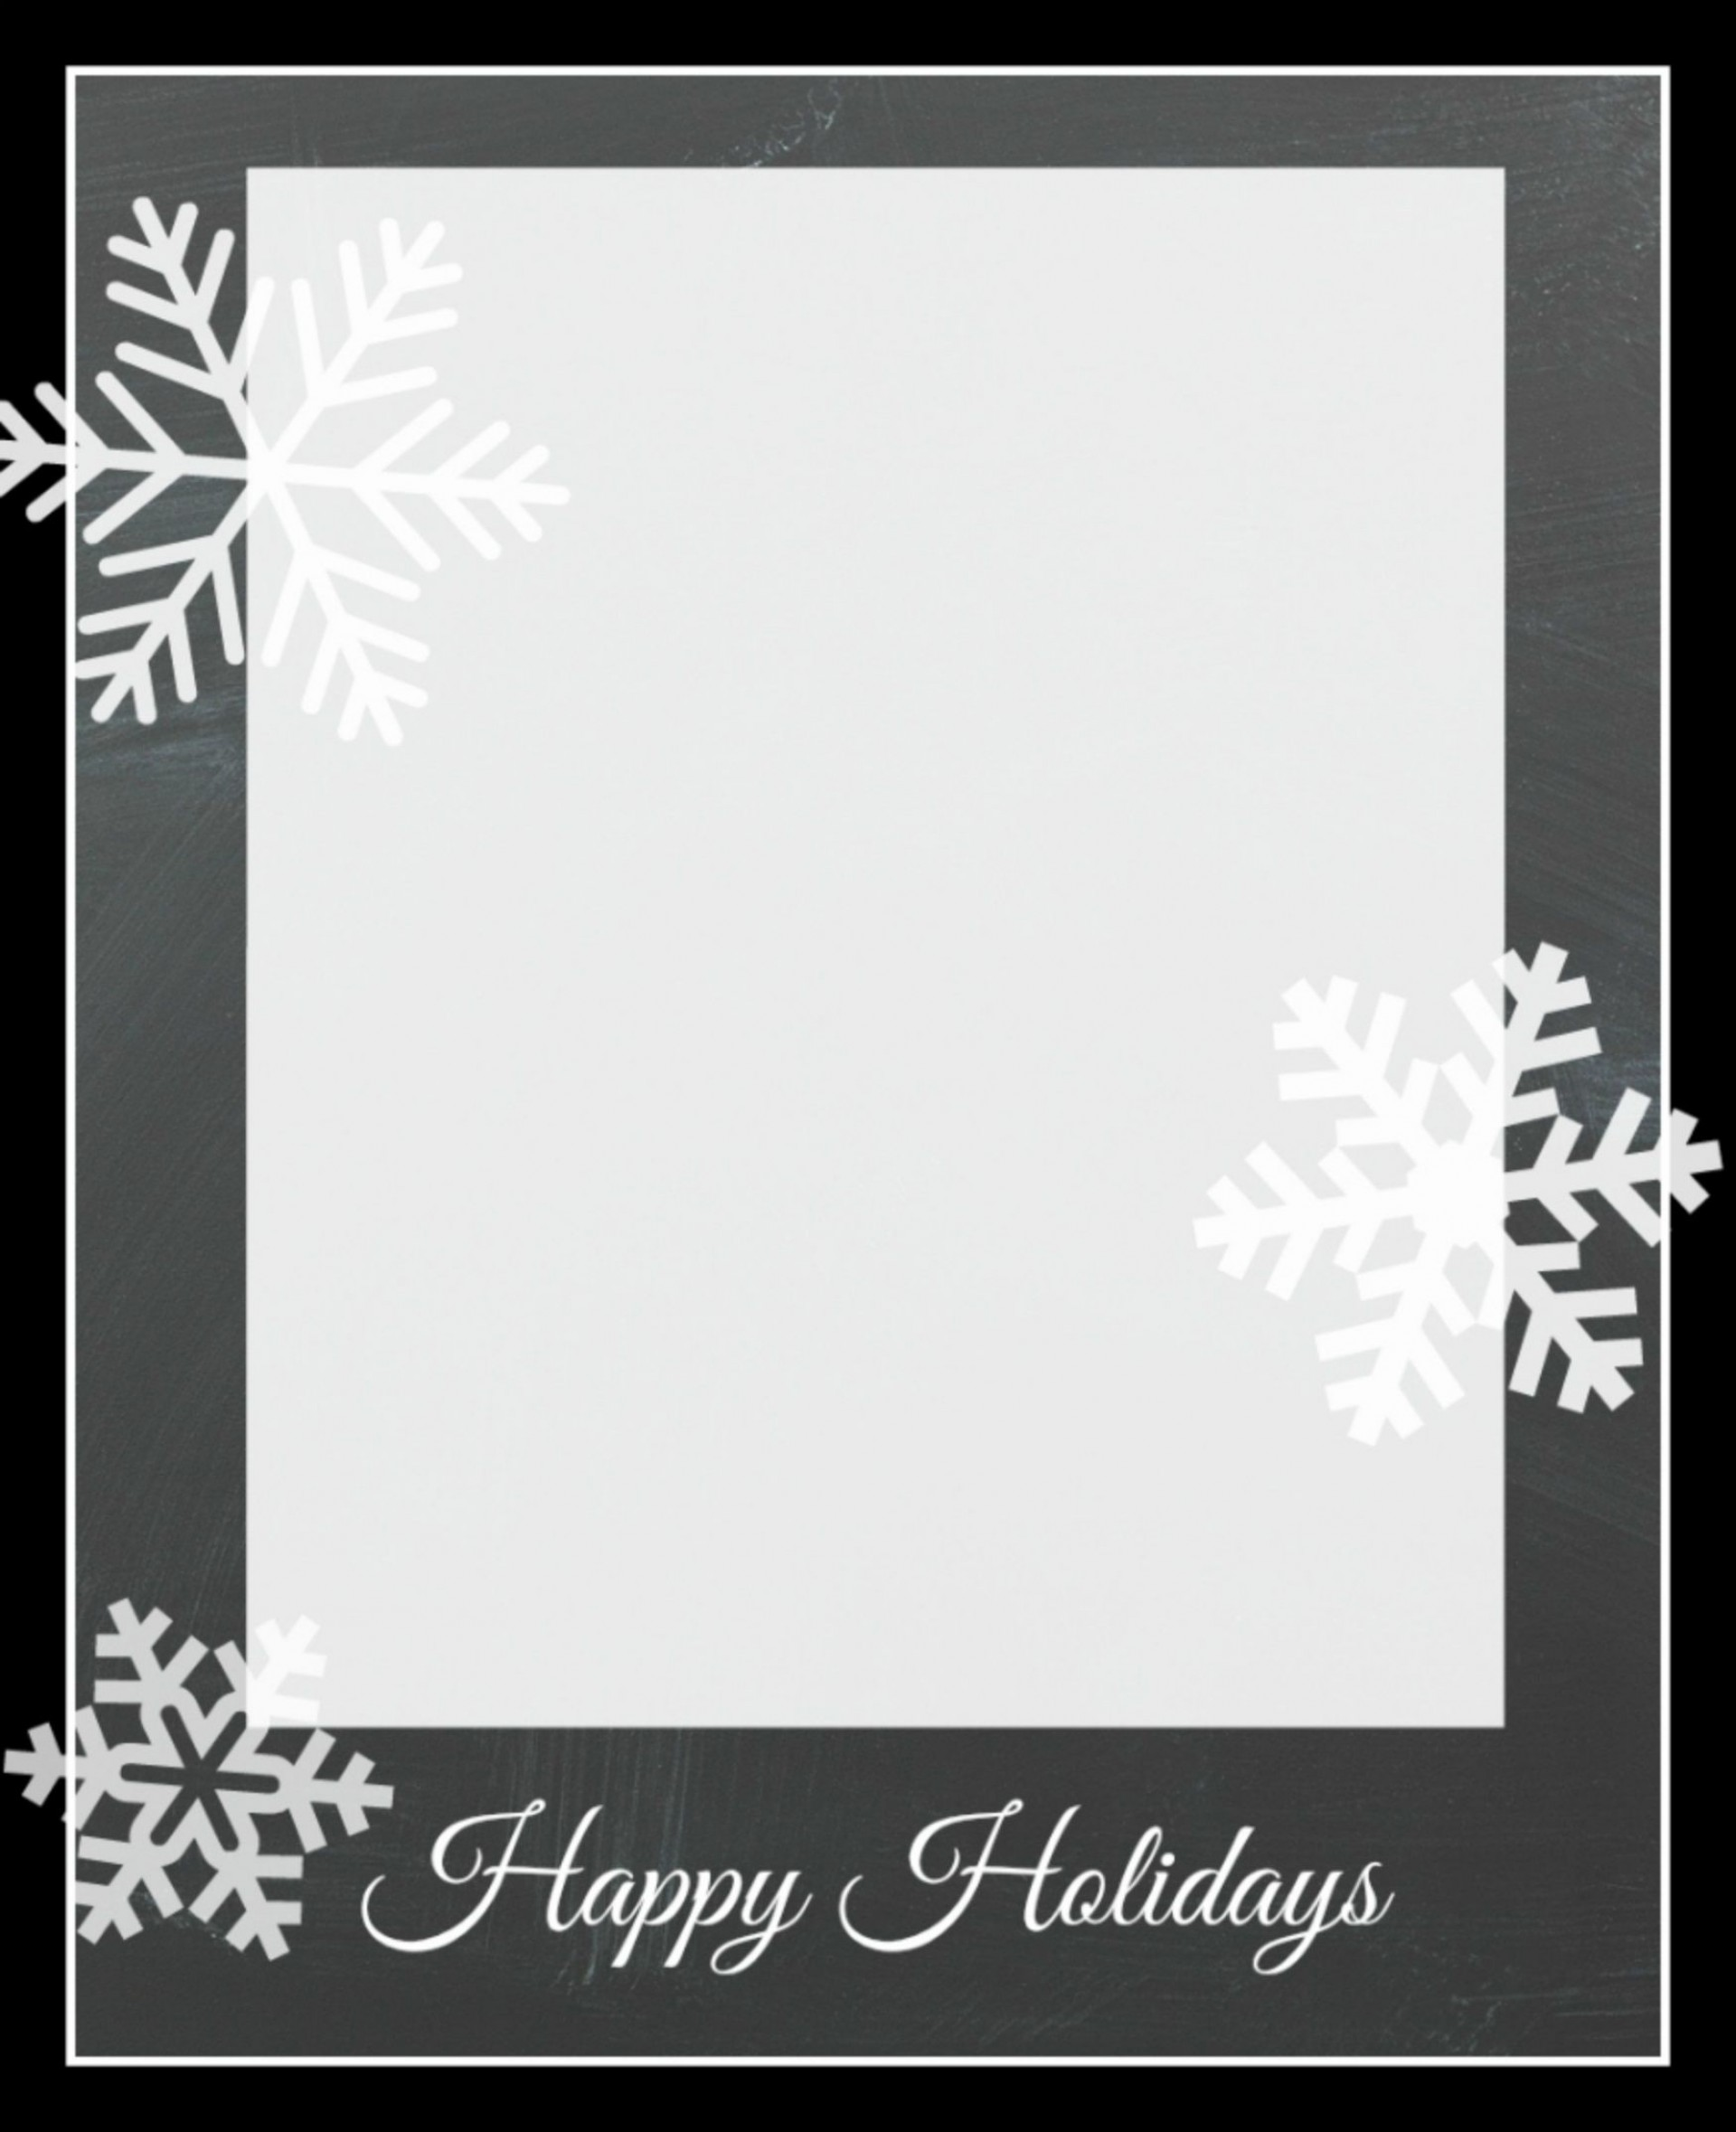 009 Frightening Free Holiday Card Template Sample  Templates Printable Photo For Word1920